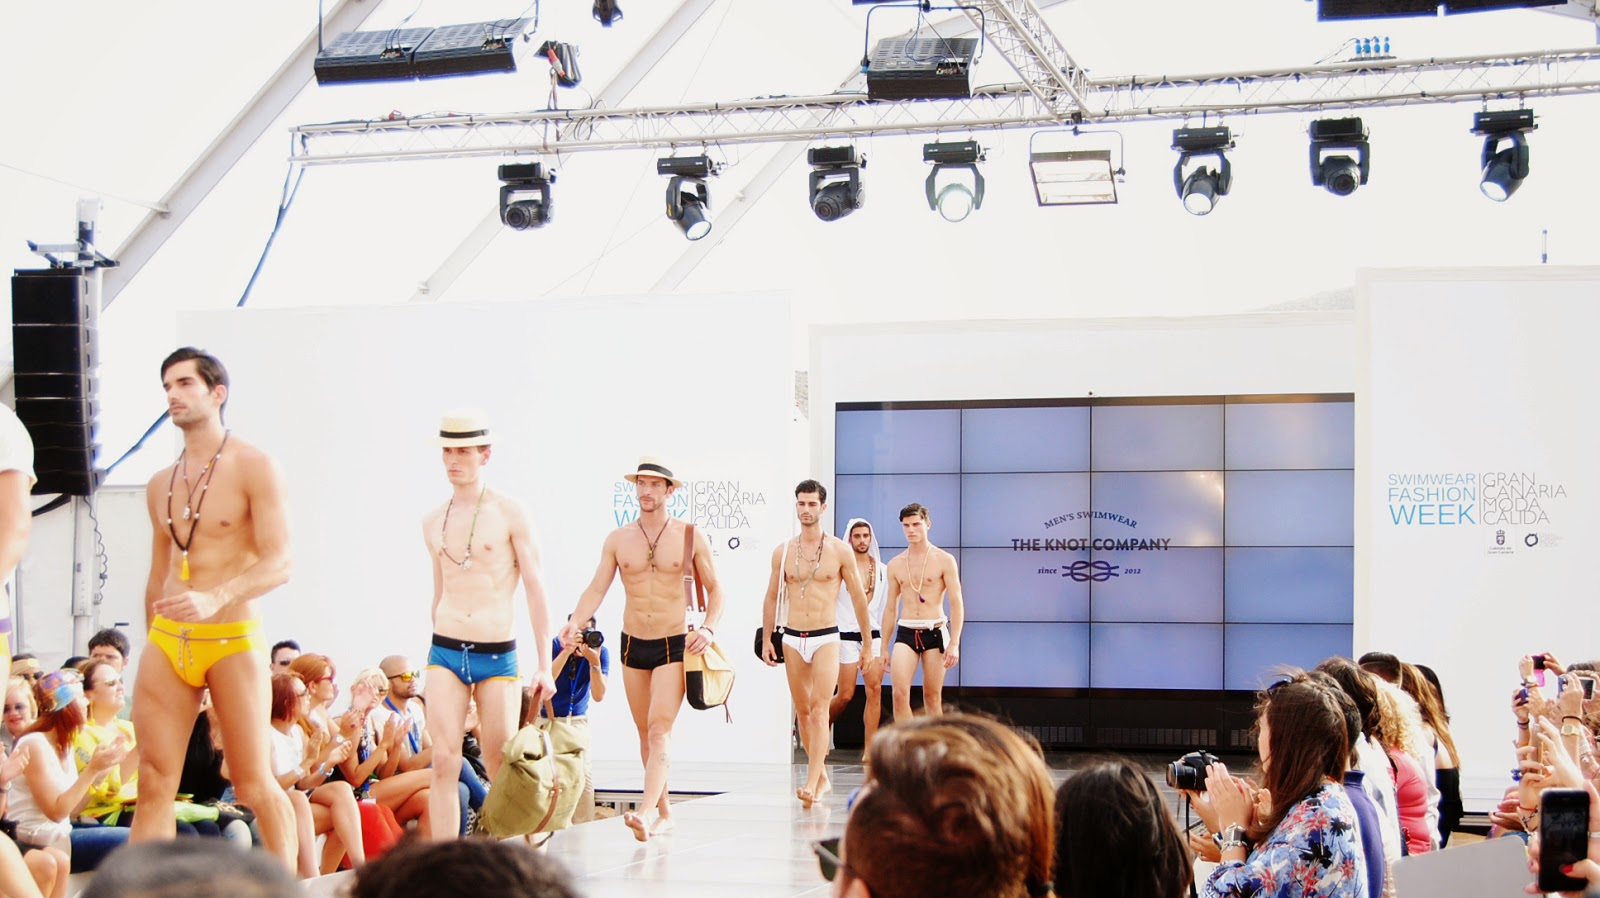 moda calida, gran canaria fashion week, gcmc, gcmodacalica2014, the knot company , swimwear,